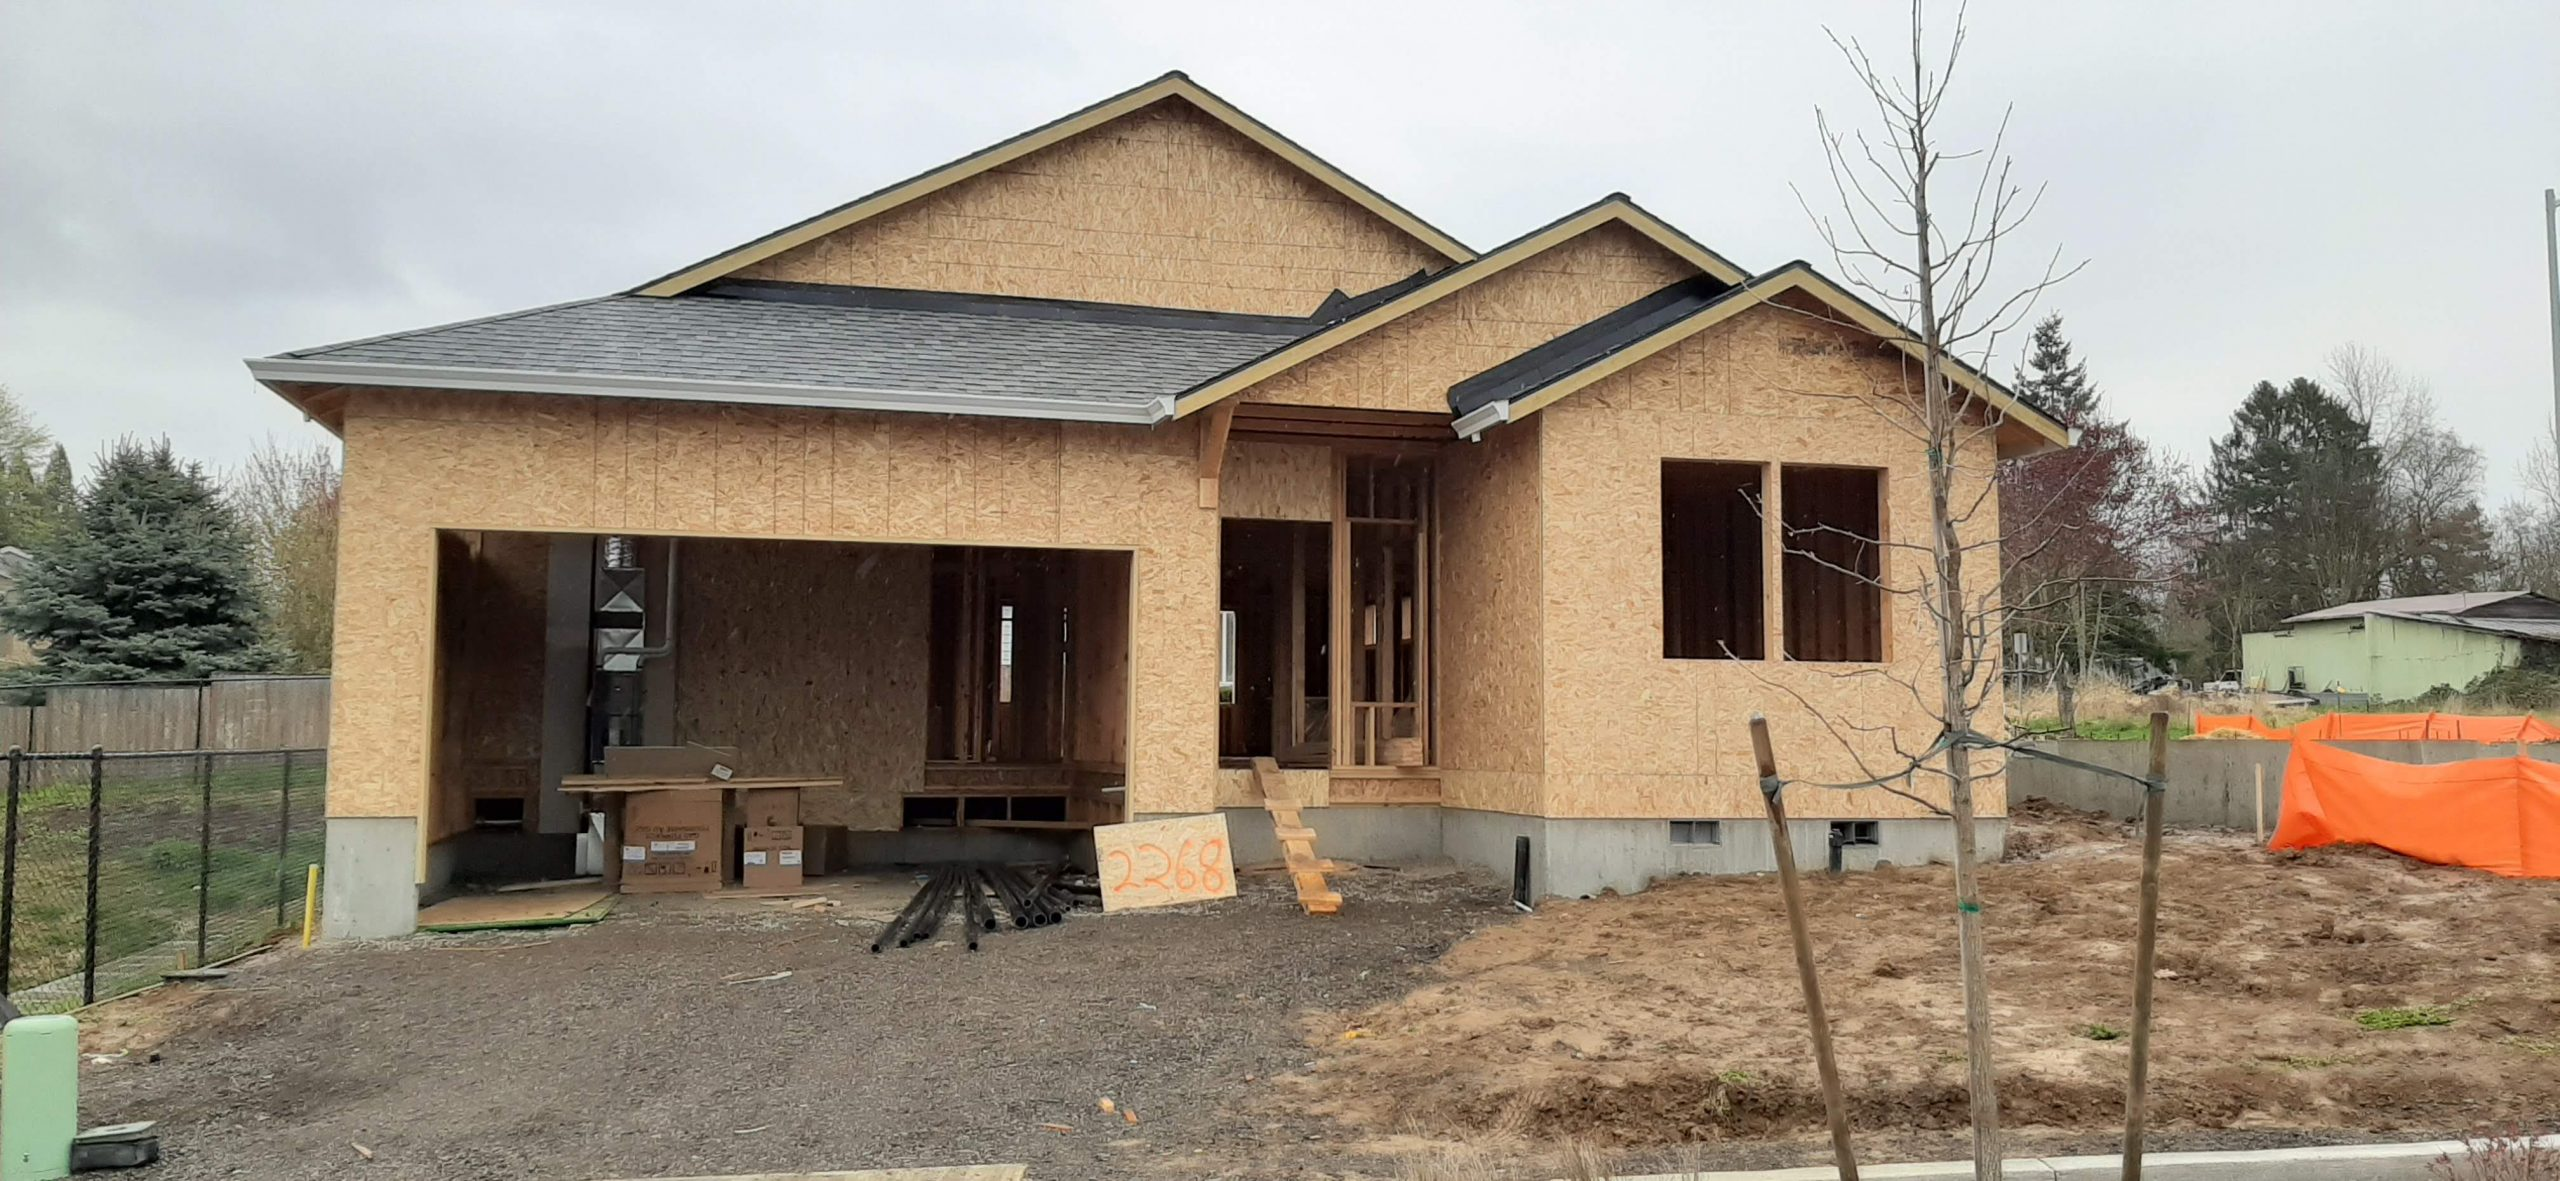 One of our spec houses under construction